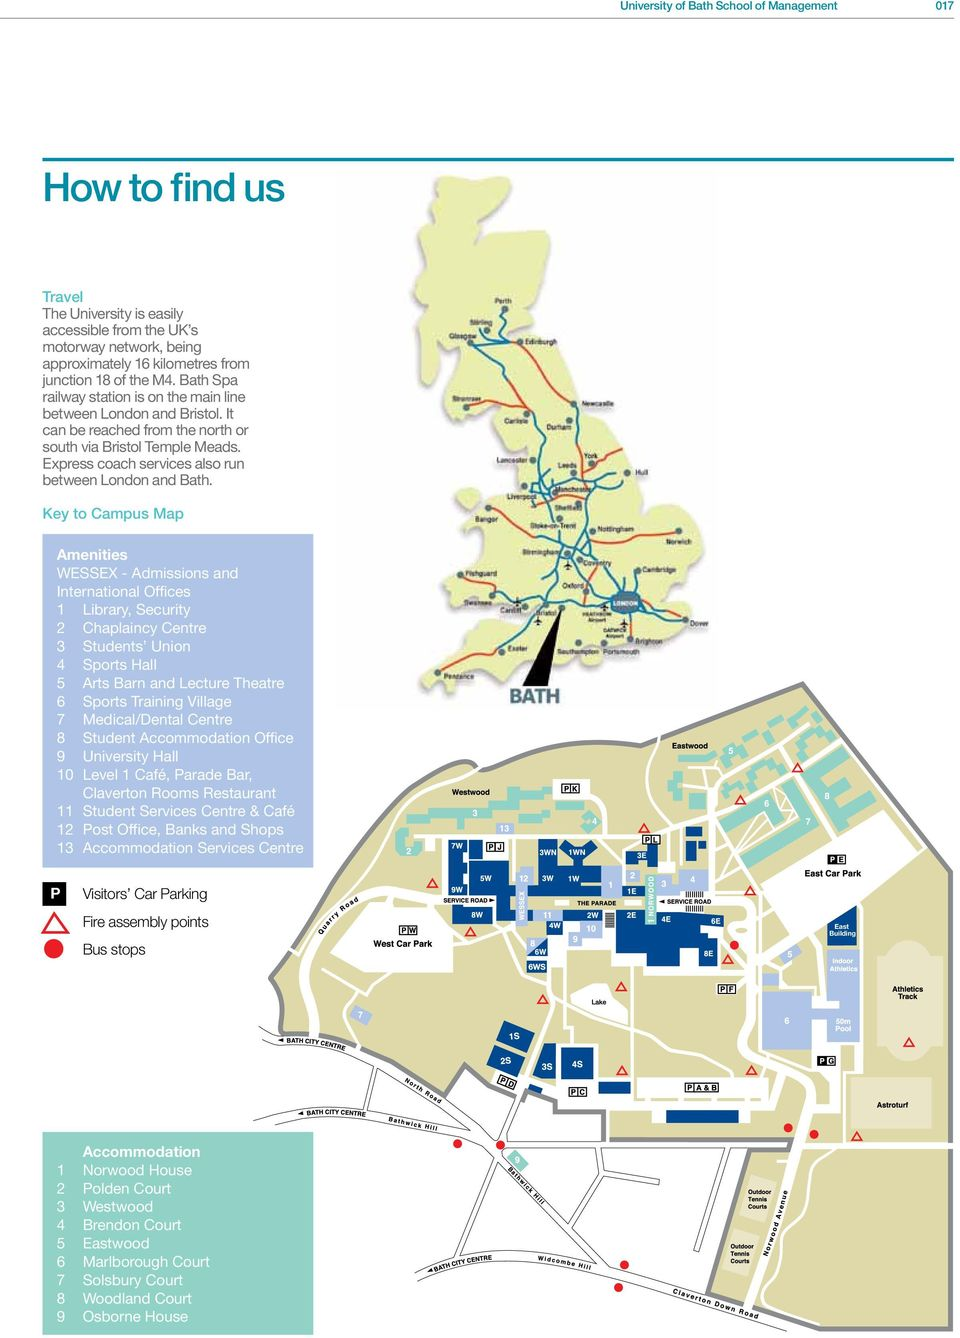 Key to Campus Map Amenities WESSEX - Admissions and International Offices 1 Library, Security 2 Chaplaincy Centre 3 Students Union 4 Sports Hall 5 Arts Barn and Lecture Theatre 6 Sports Training